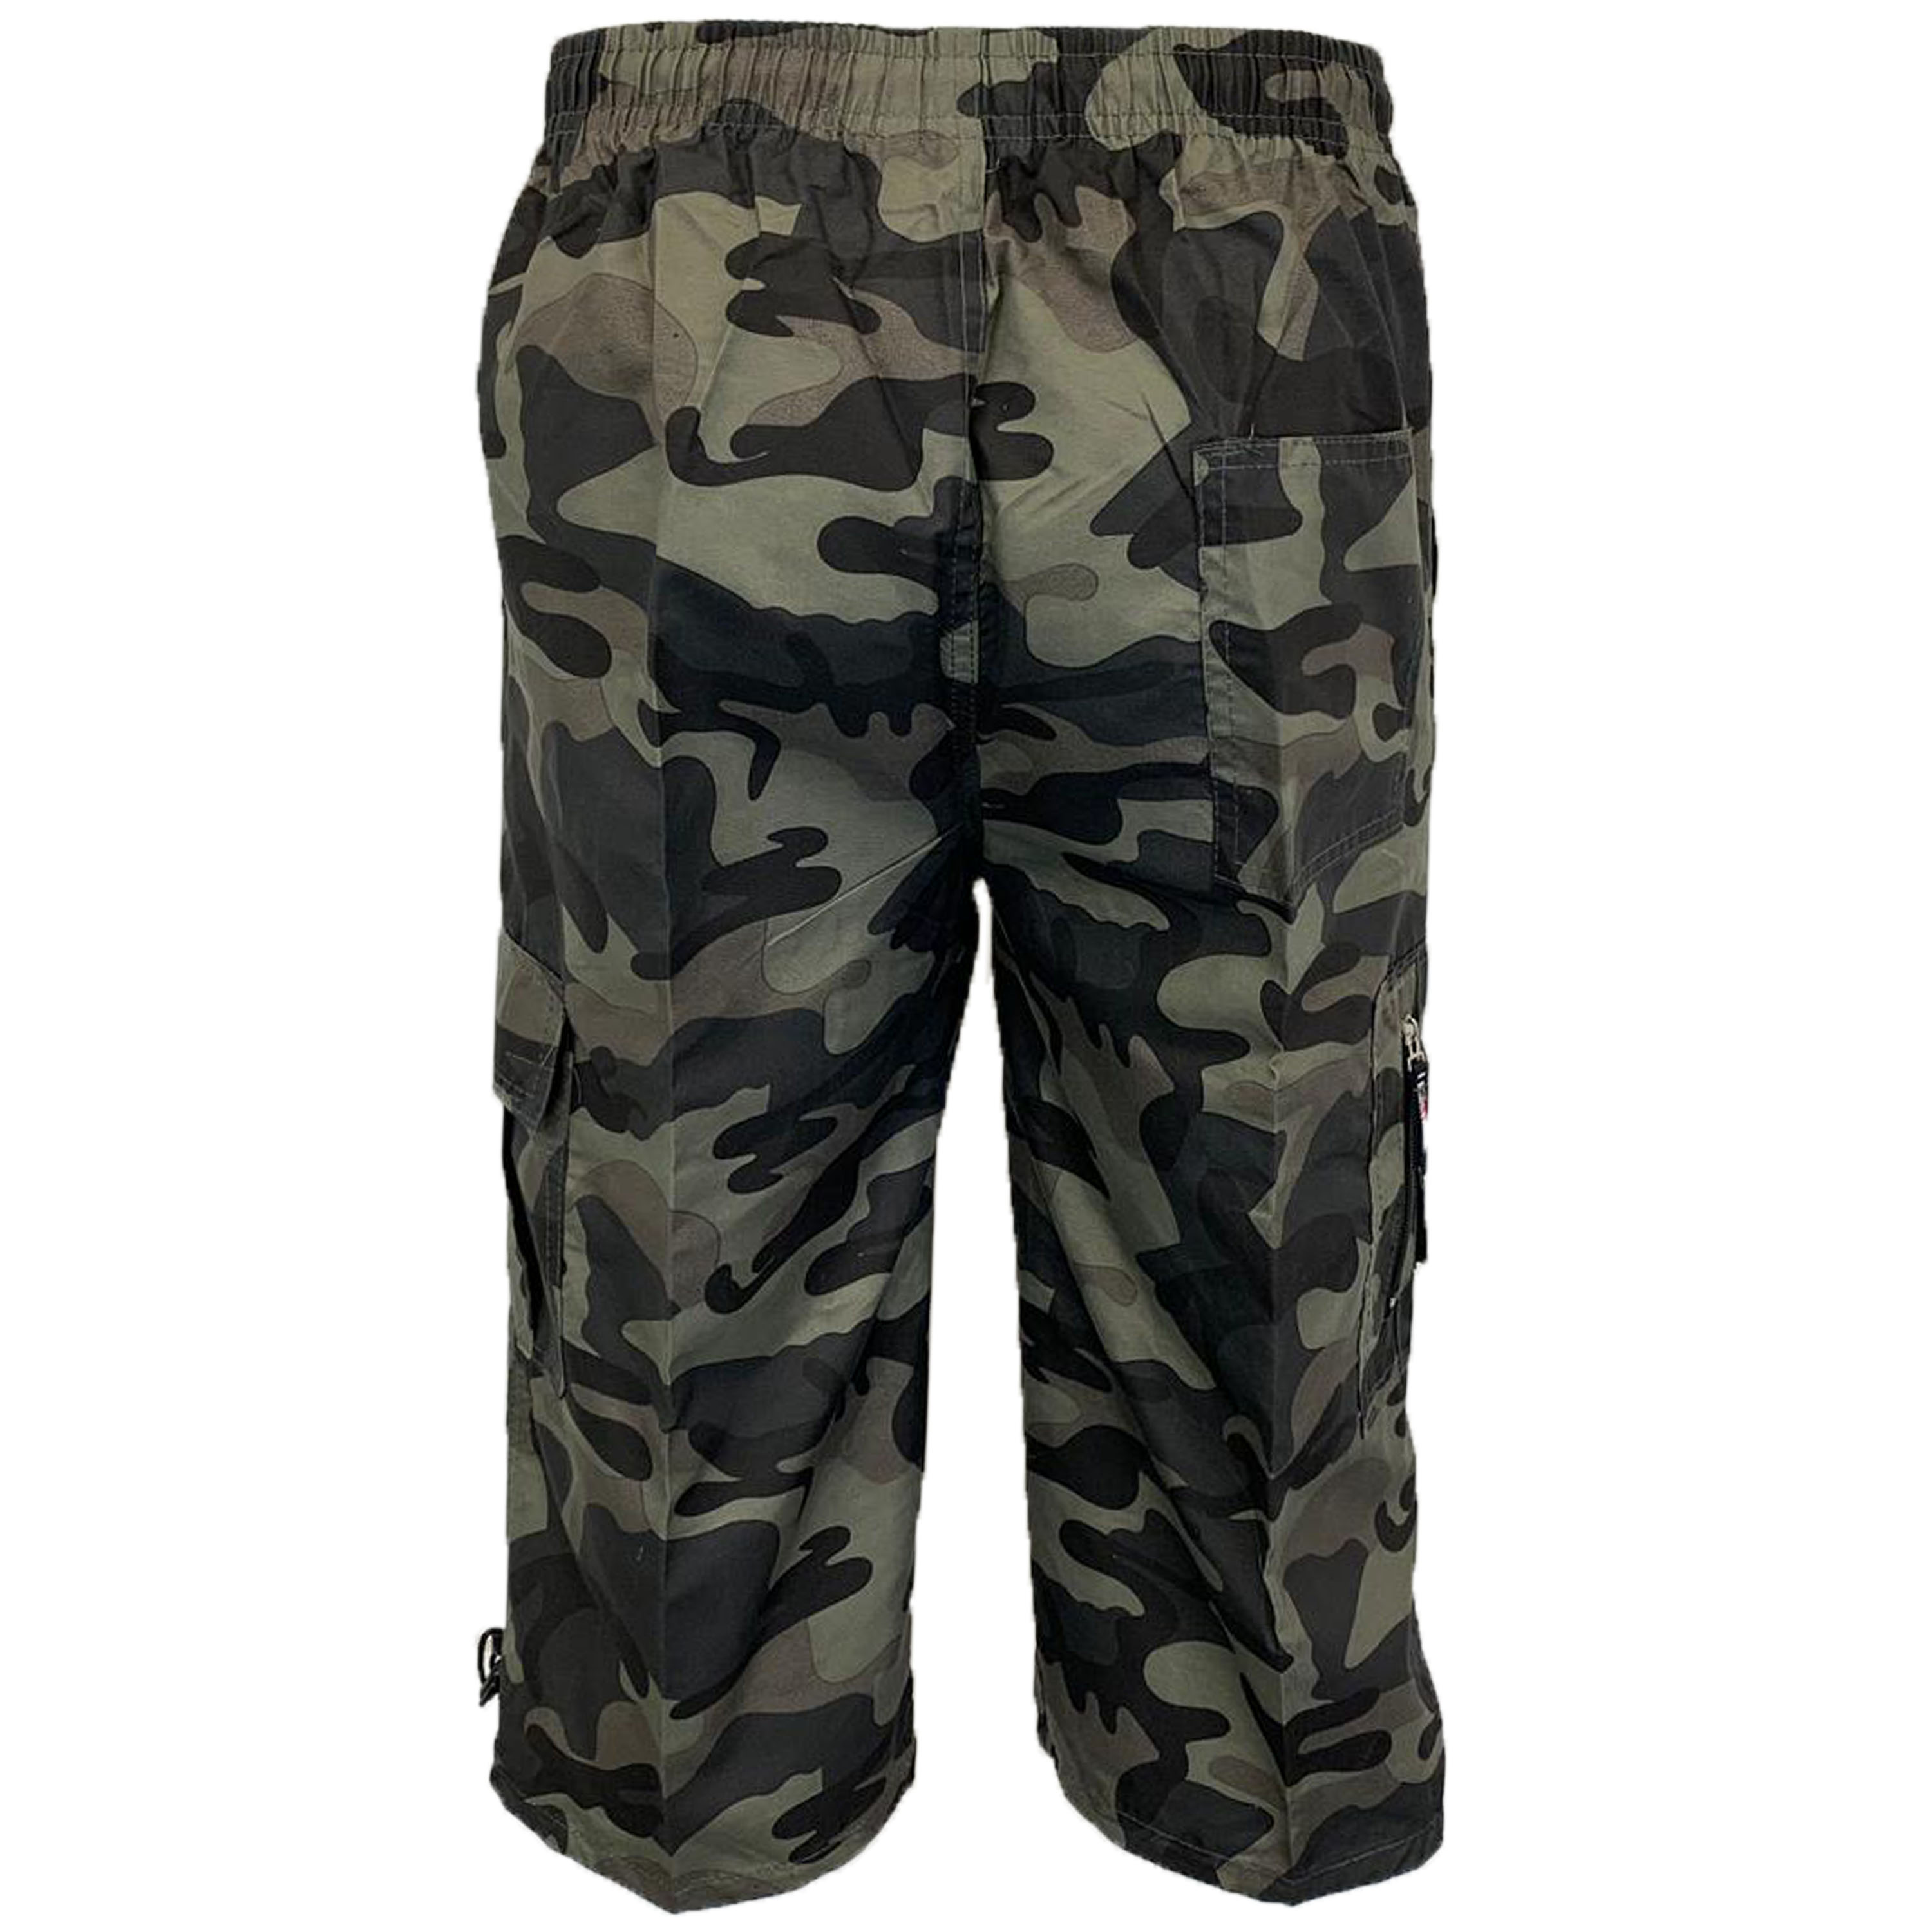 Mens-Camouflage-Combat-Cargo-Shorts-3-4-Length-Army-Military-Sports-Summer-New thumbnail 10